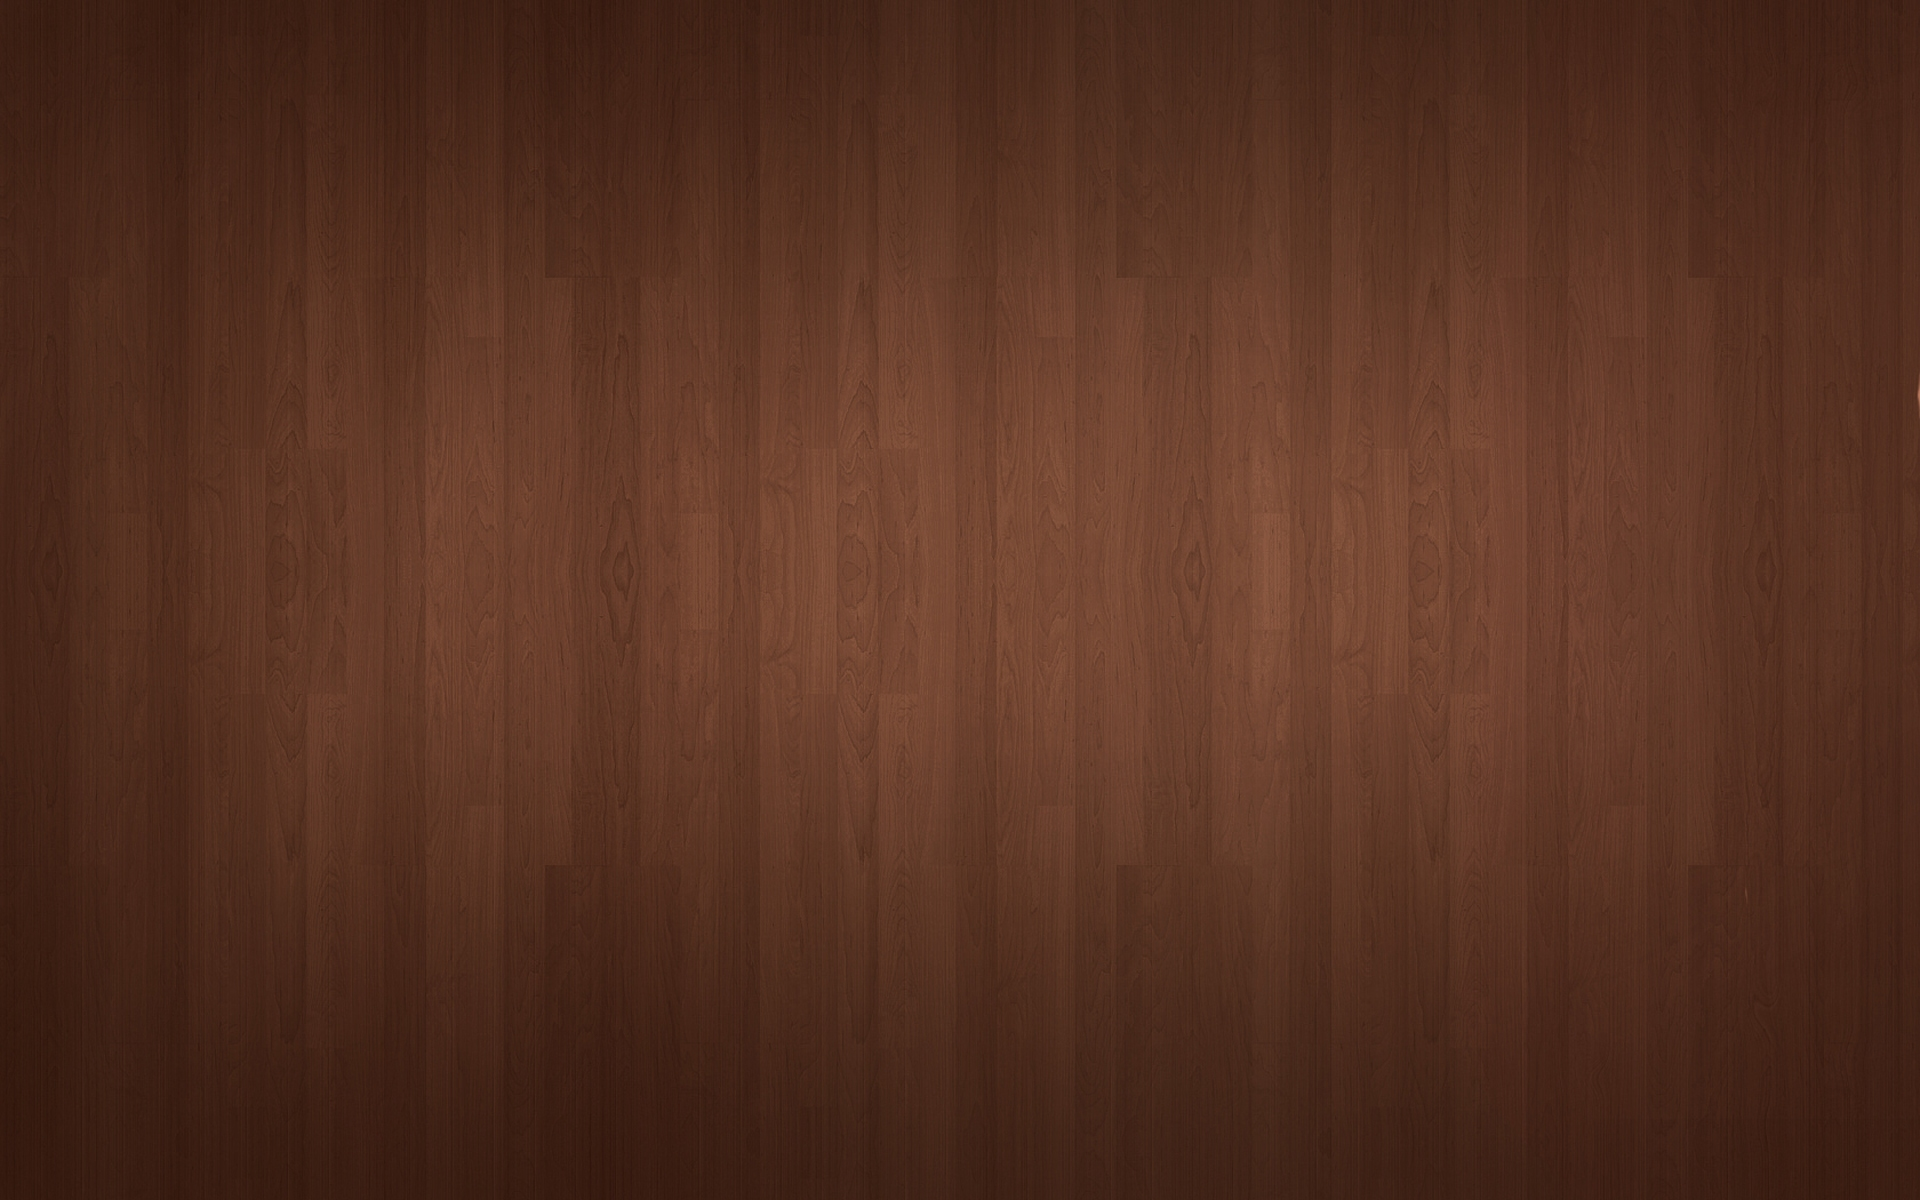 planking, parquet, tree wood, download photo, wood